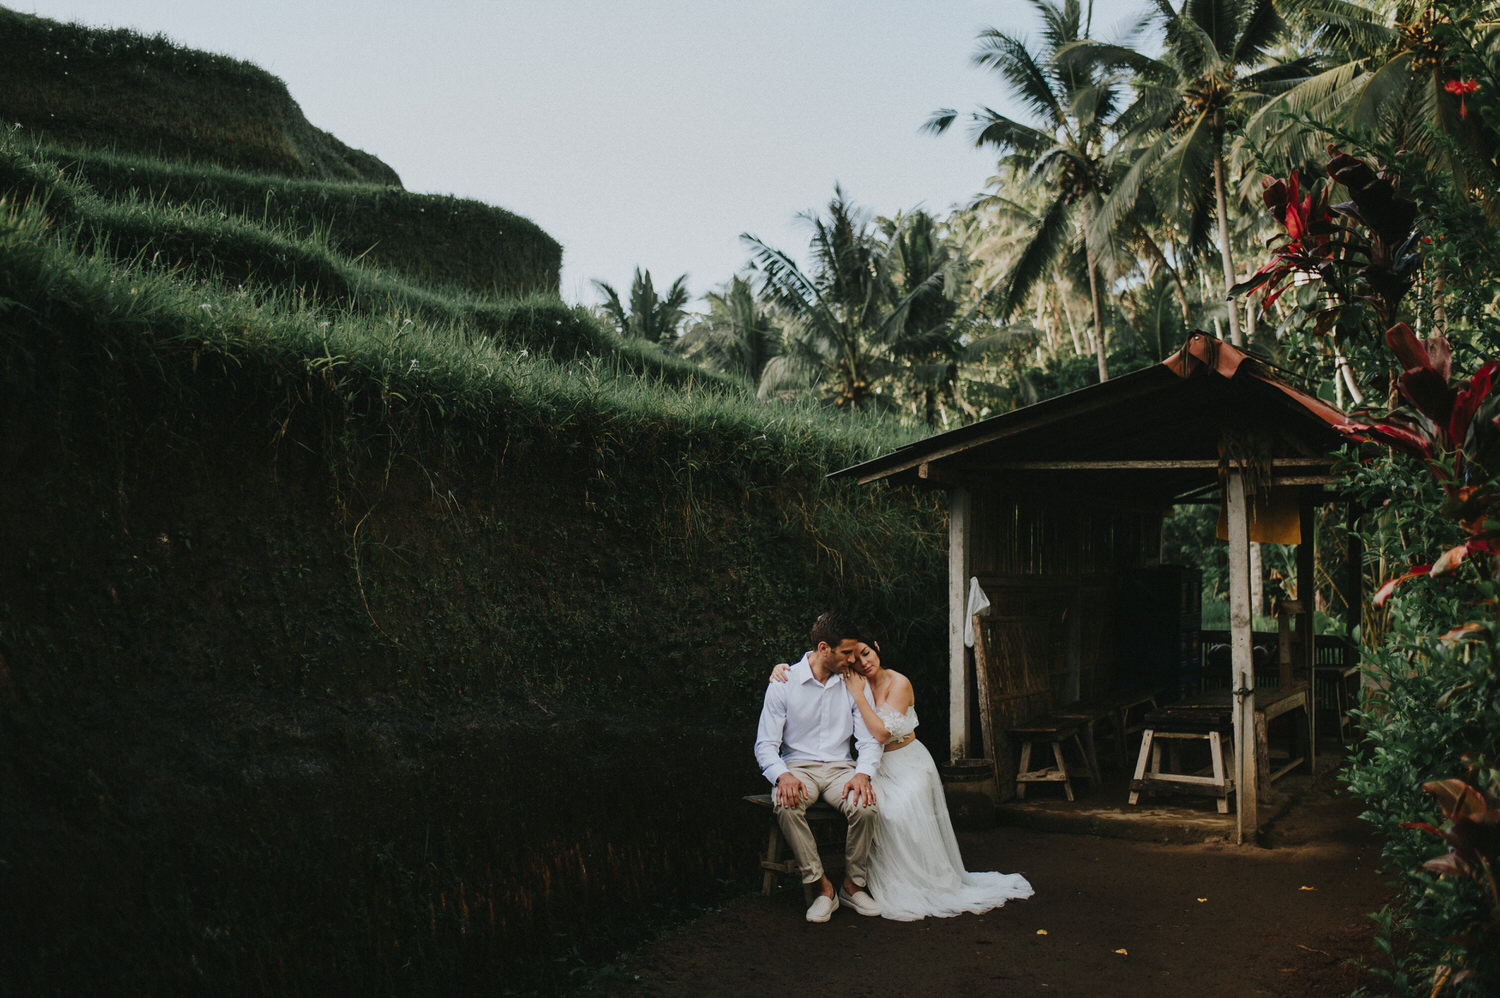 bali wedding - elopement - ubud wedding - diktatphotography - olga + Jason - 19